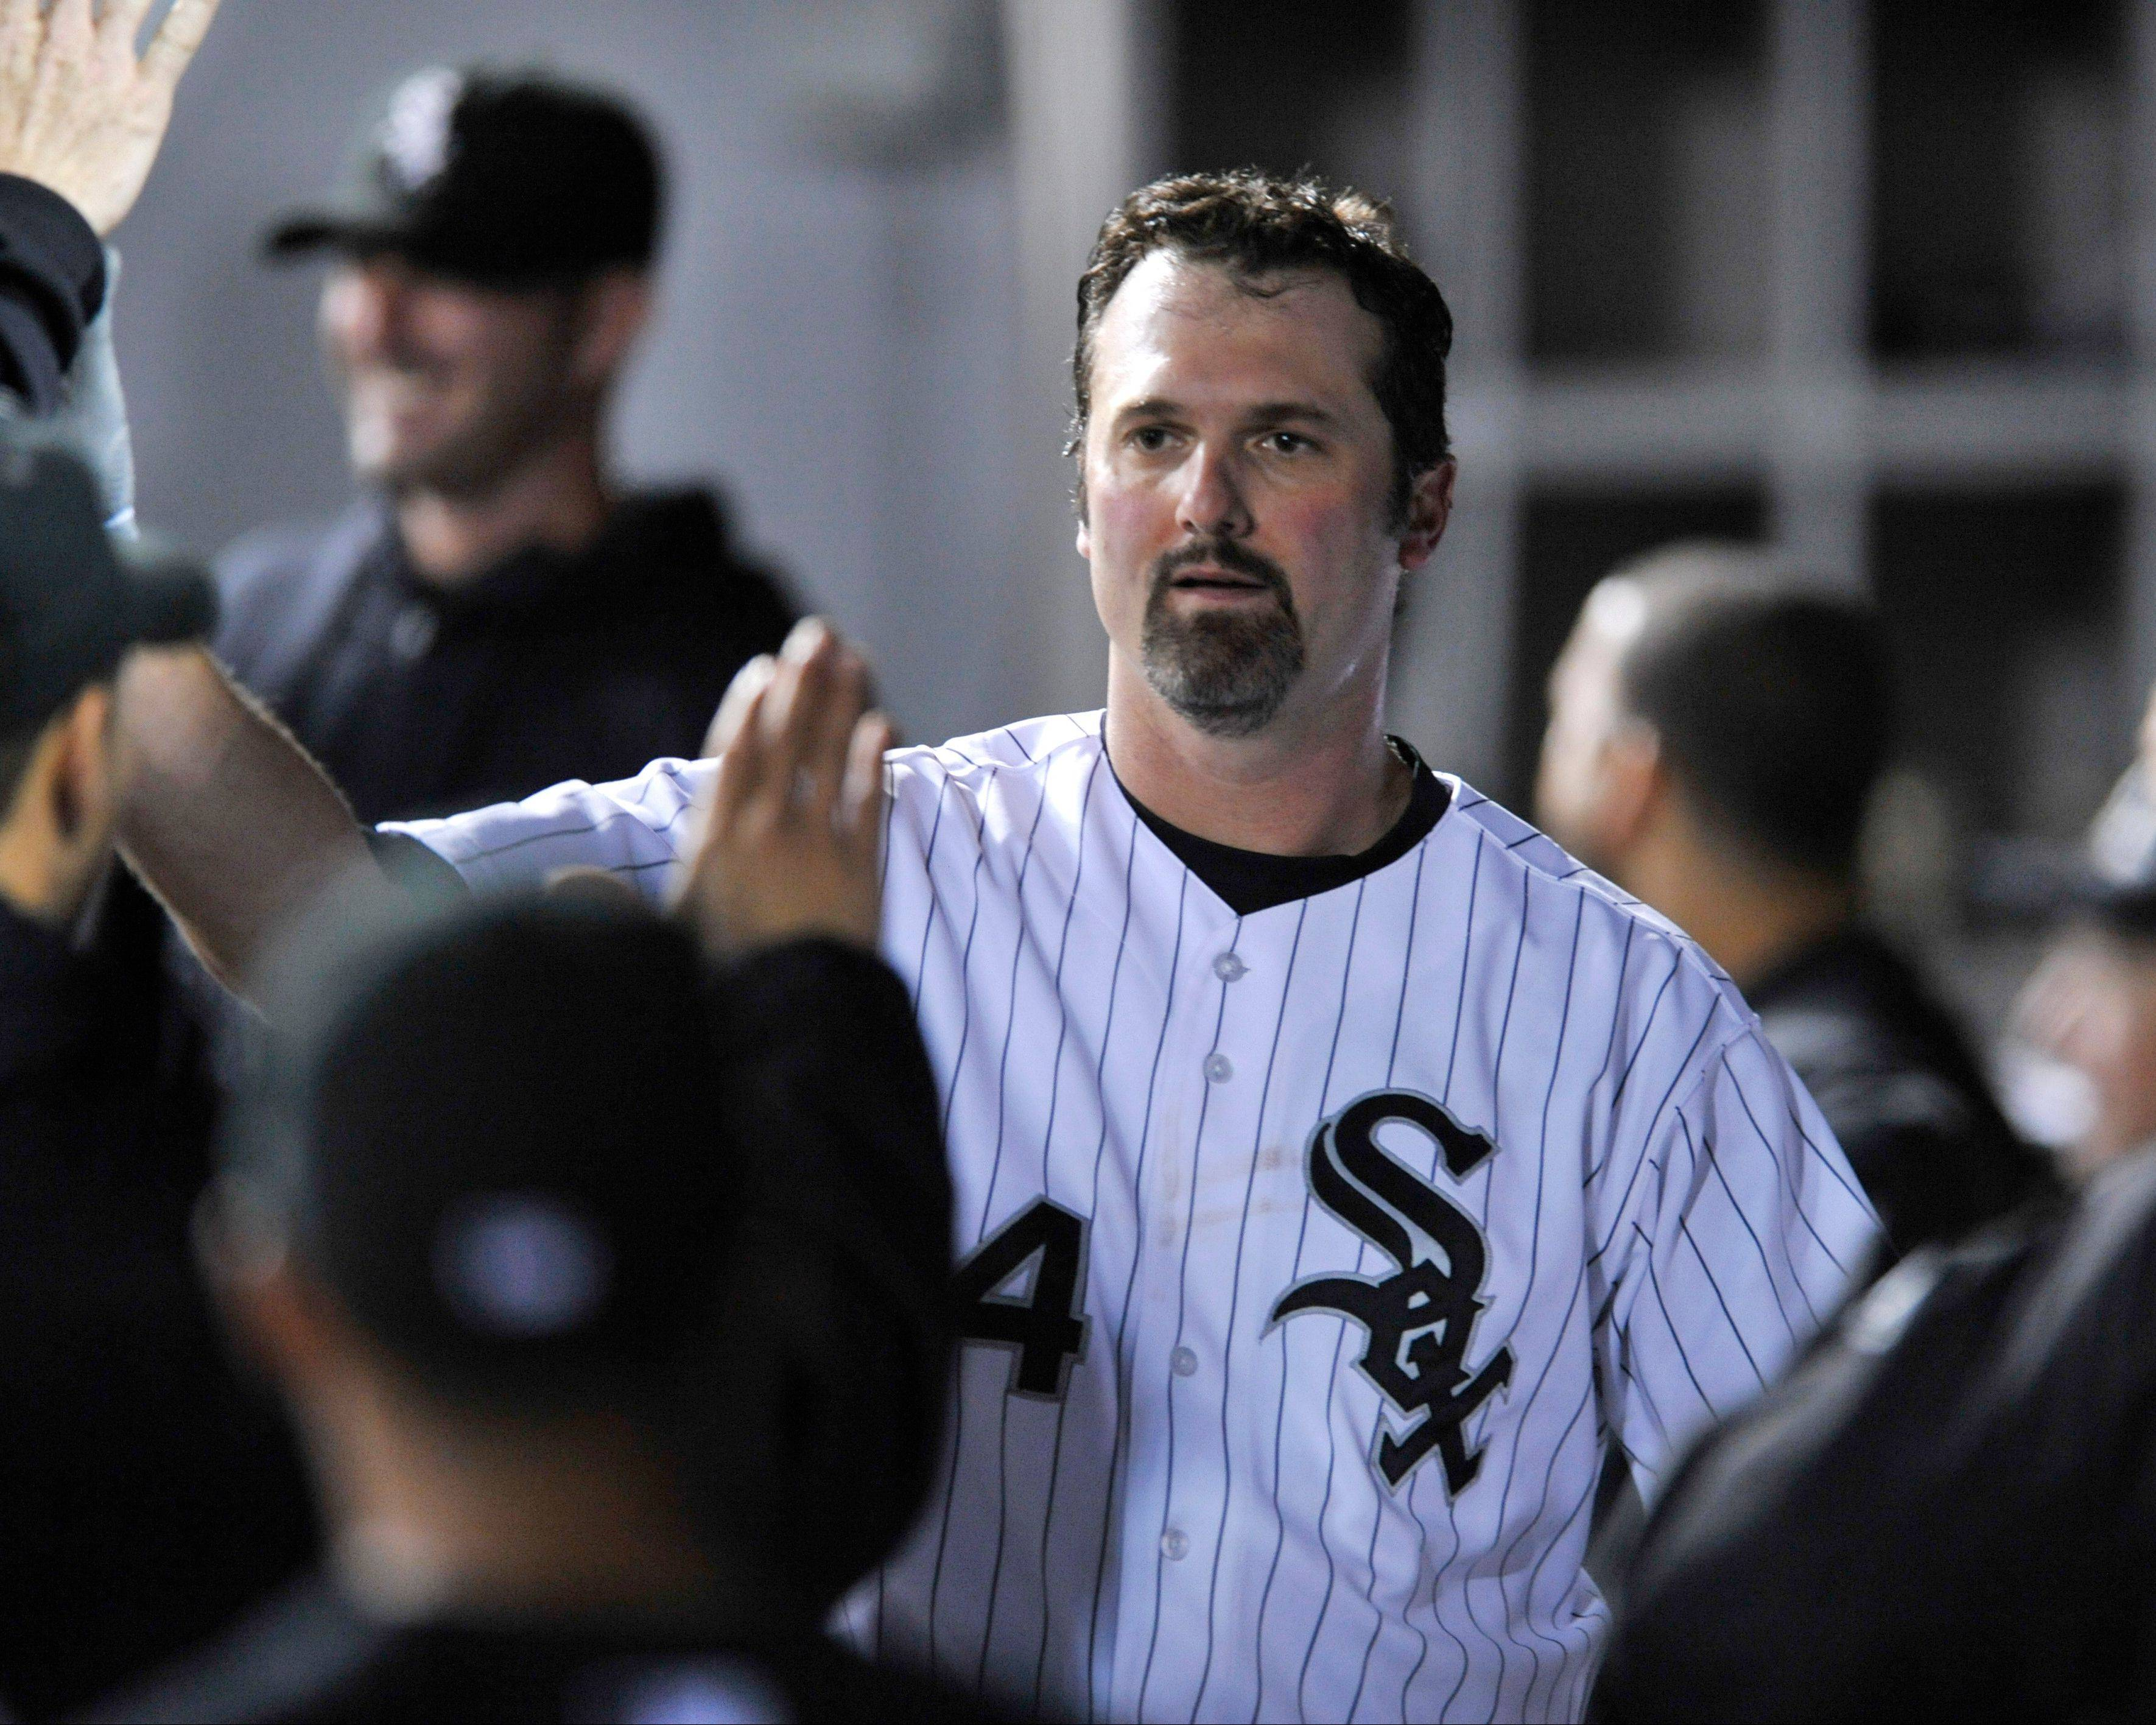 Paul Konerko has agreed to a one-year deal with the White Sox for the 2014 season, team officials announced Wednesday.